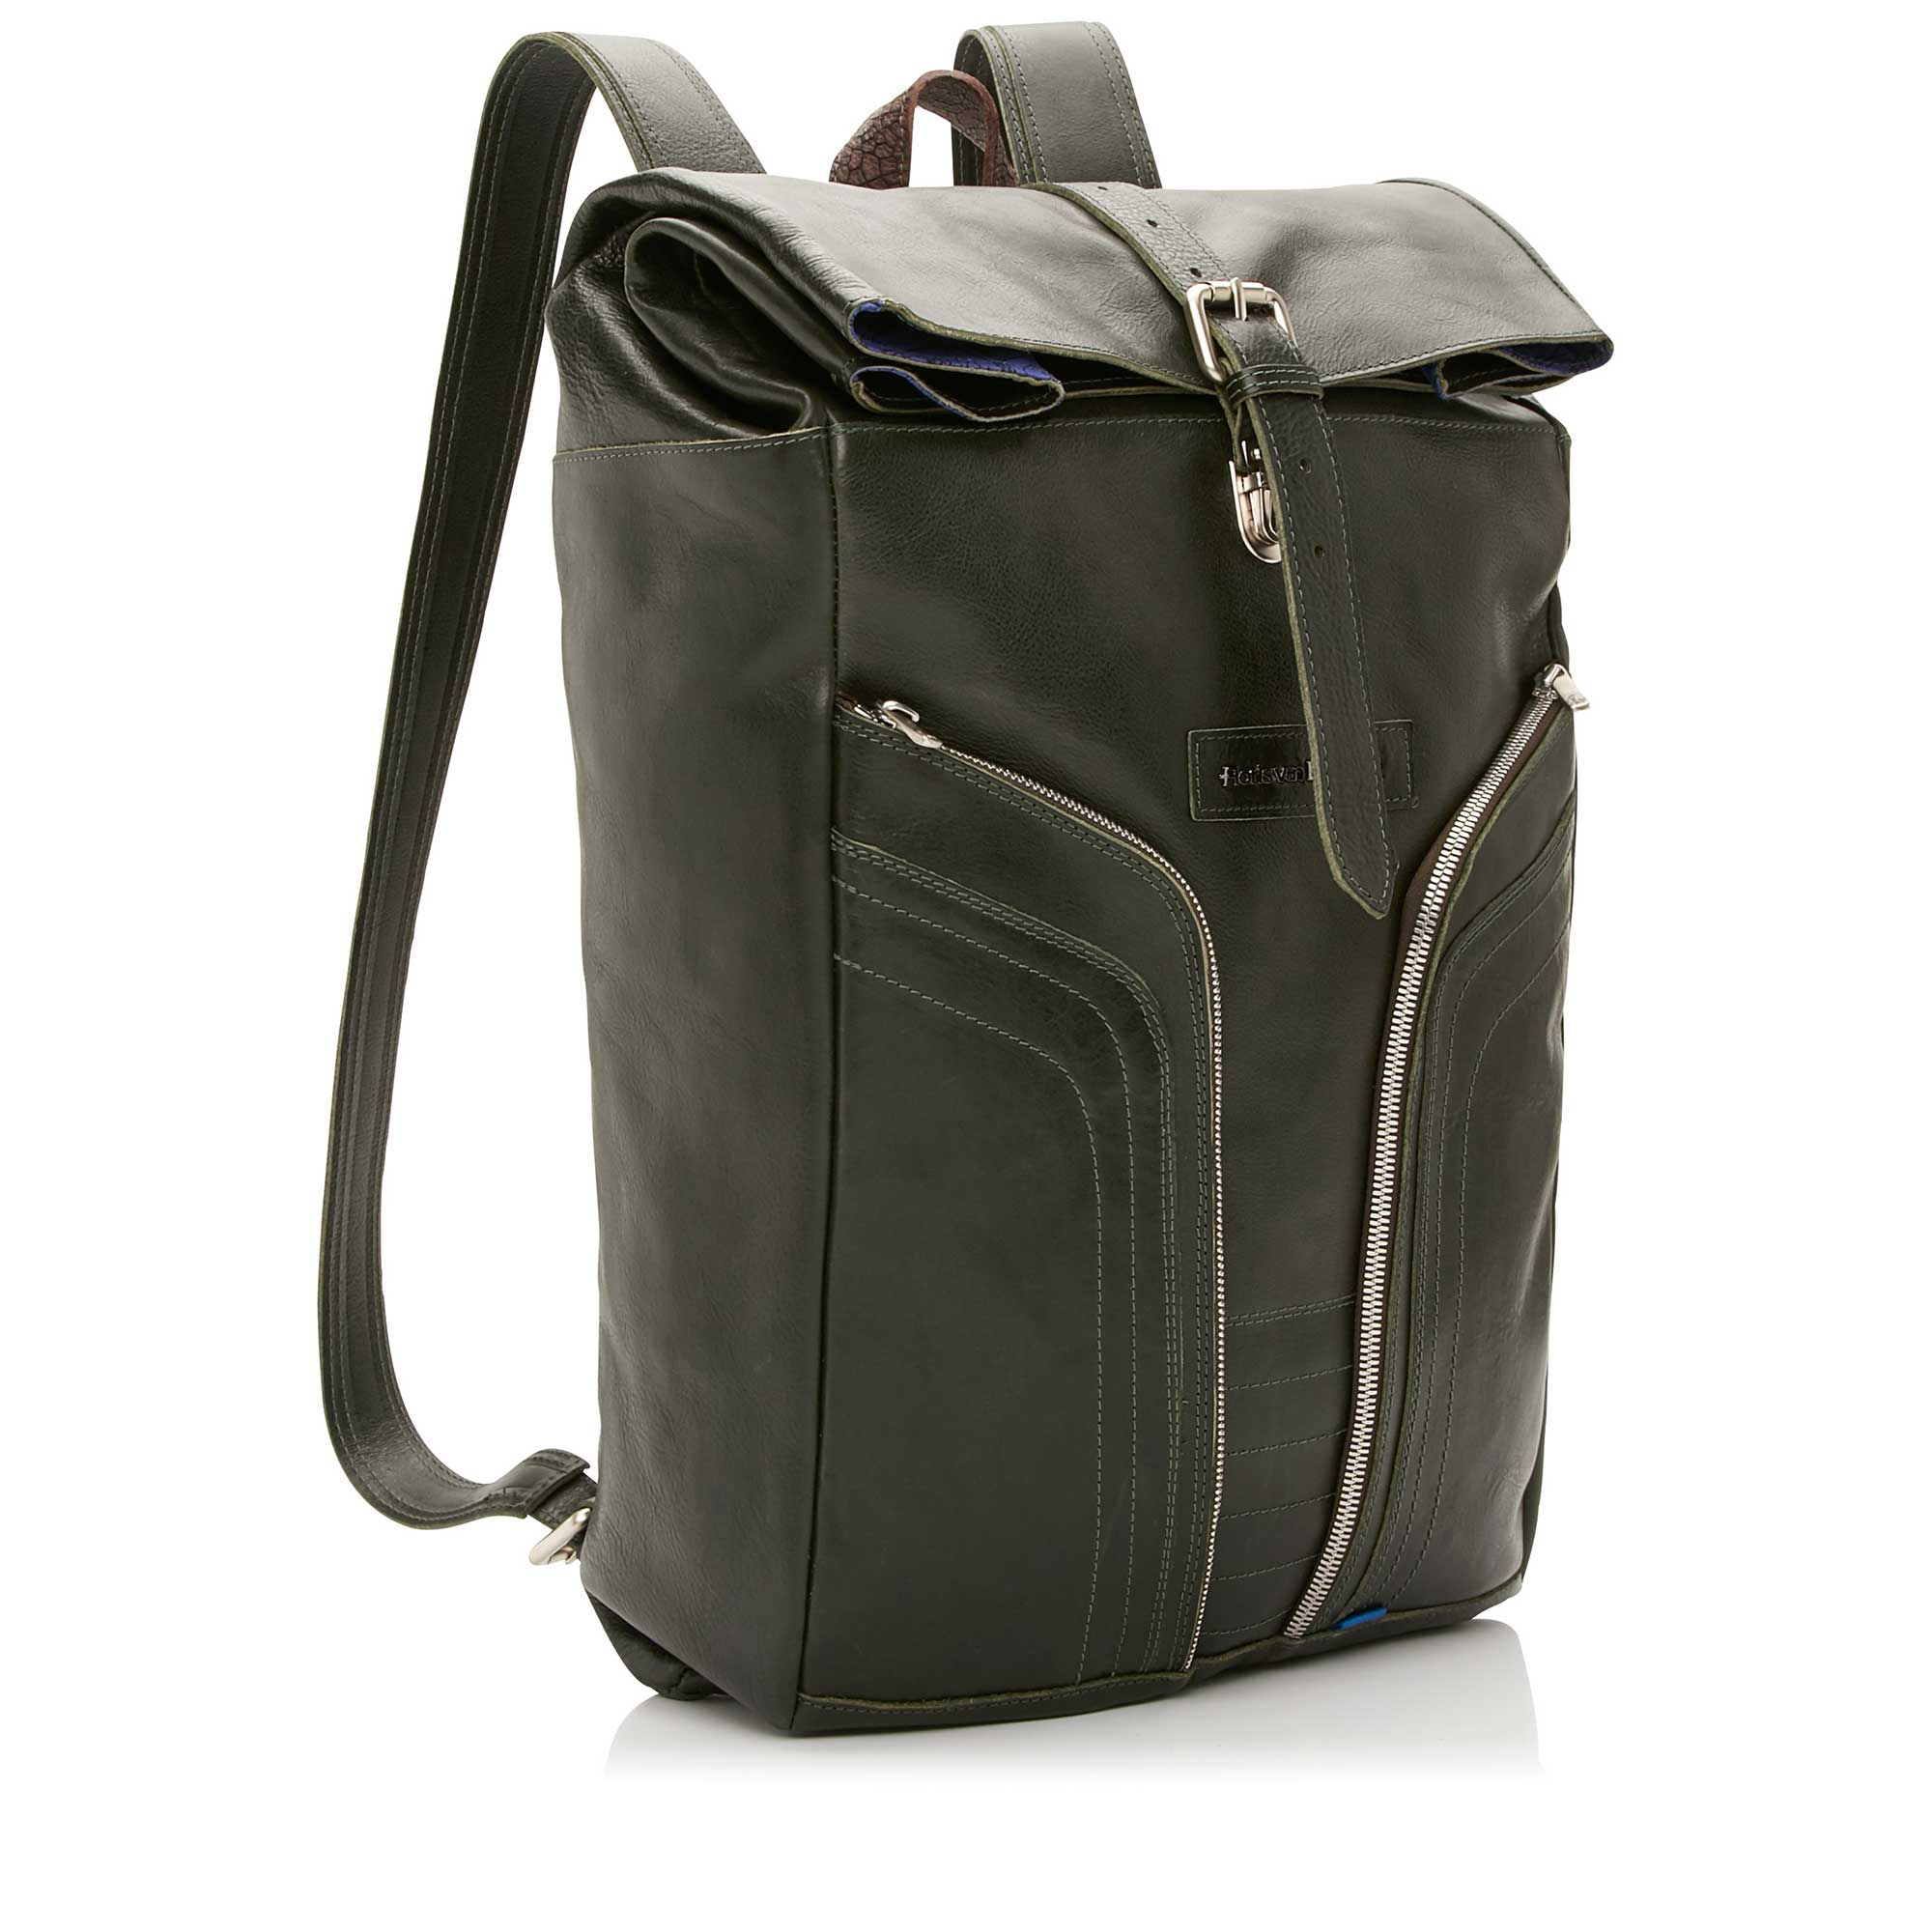 53000/00 - Floris van Bommel green leather backpack